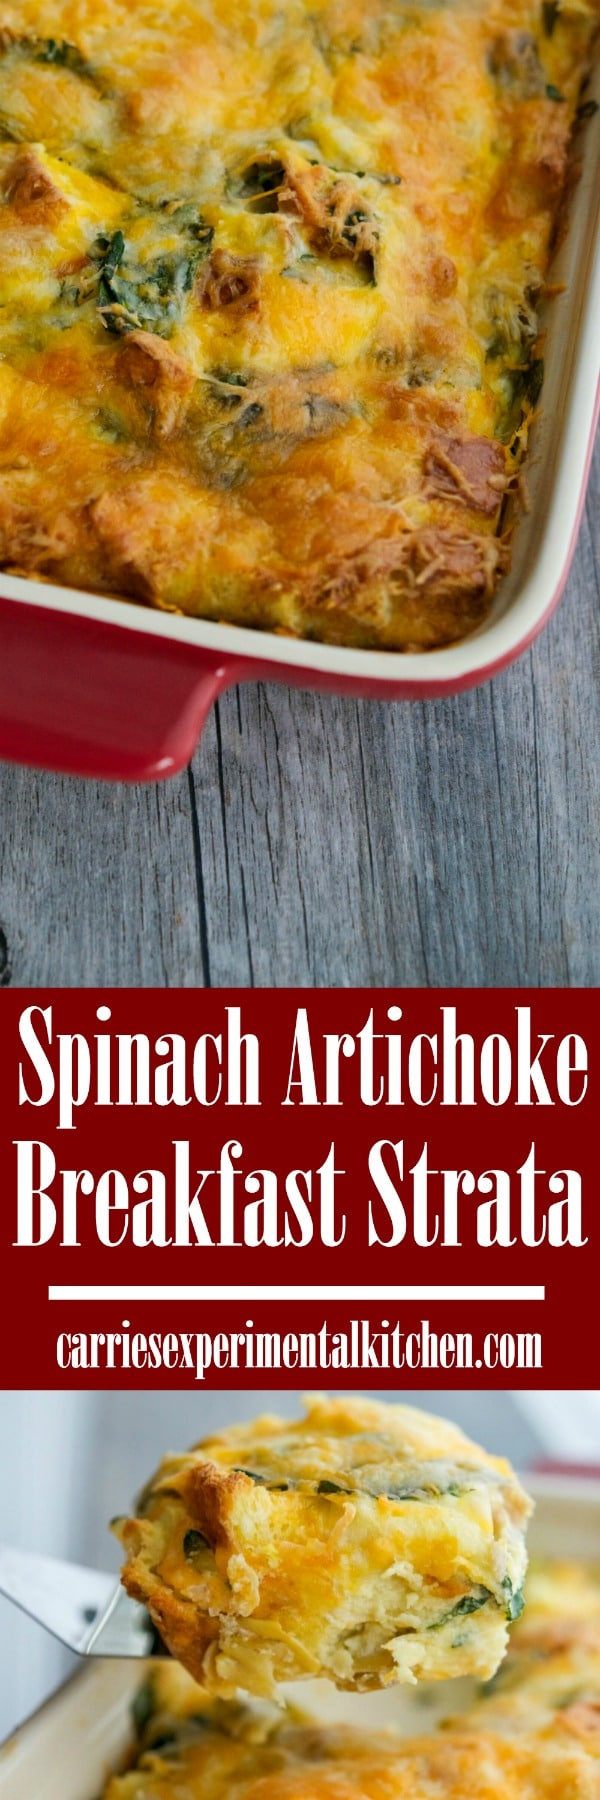 This savory Spinach Artichoke Breakfast Strata is wonderful.  It's so easy to prepare and fantastic when feeding a crowd for breakfast or brunch. #breakfast #brunch #eggs